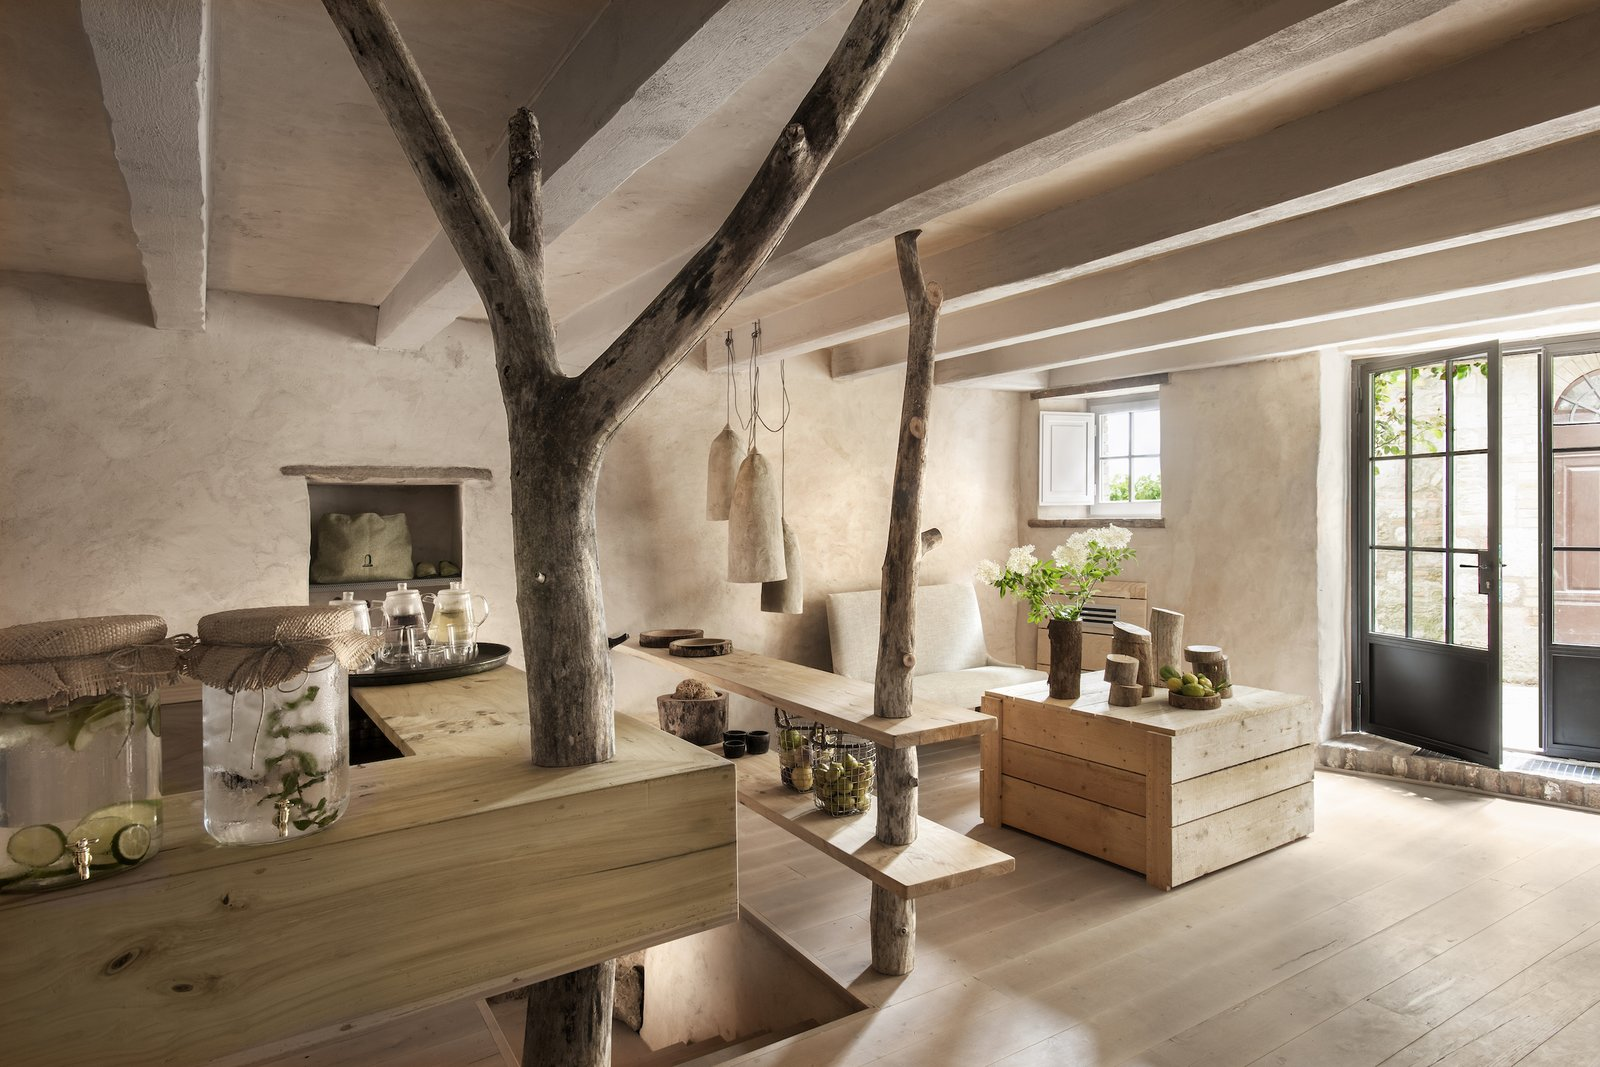 Photo 1 of 9 in A Tree-Filled Spa That Brings Warm Modernism to a 900-Year-Old Tuscan Village